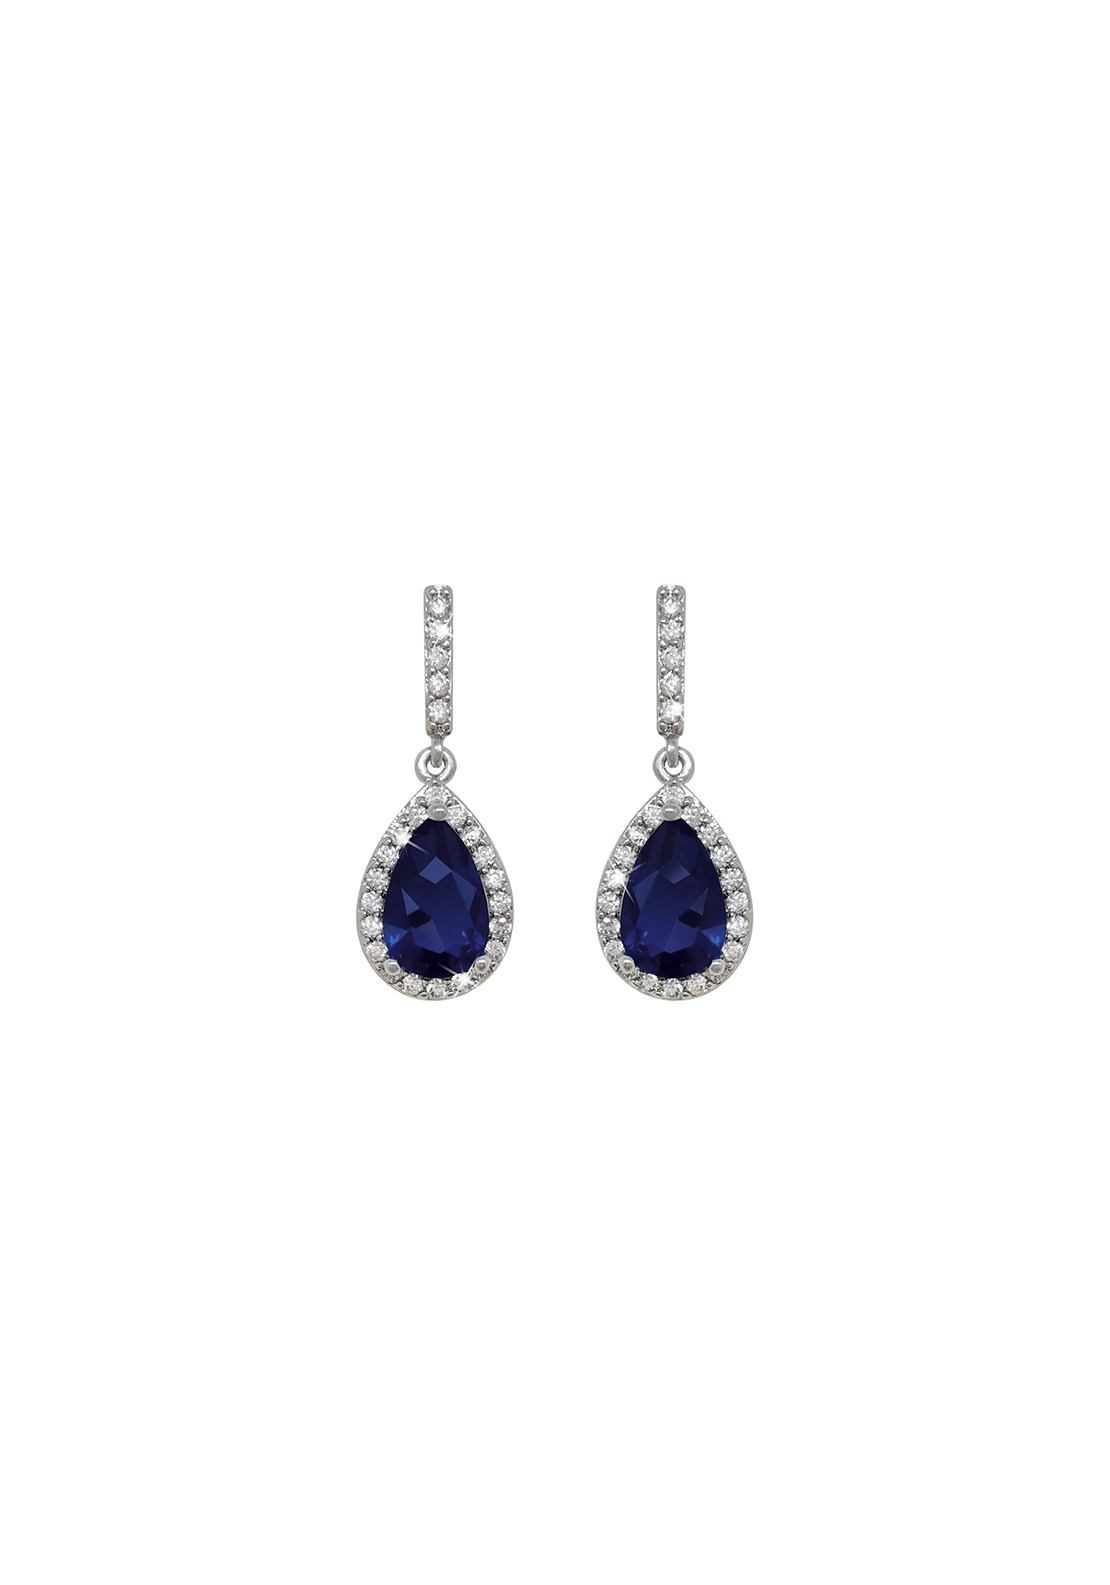 Tipperary Crystal Faux Sapphire Pear Shaped Earrings, Silver and Blue